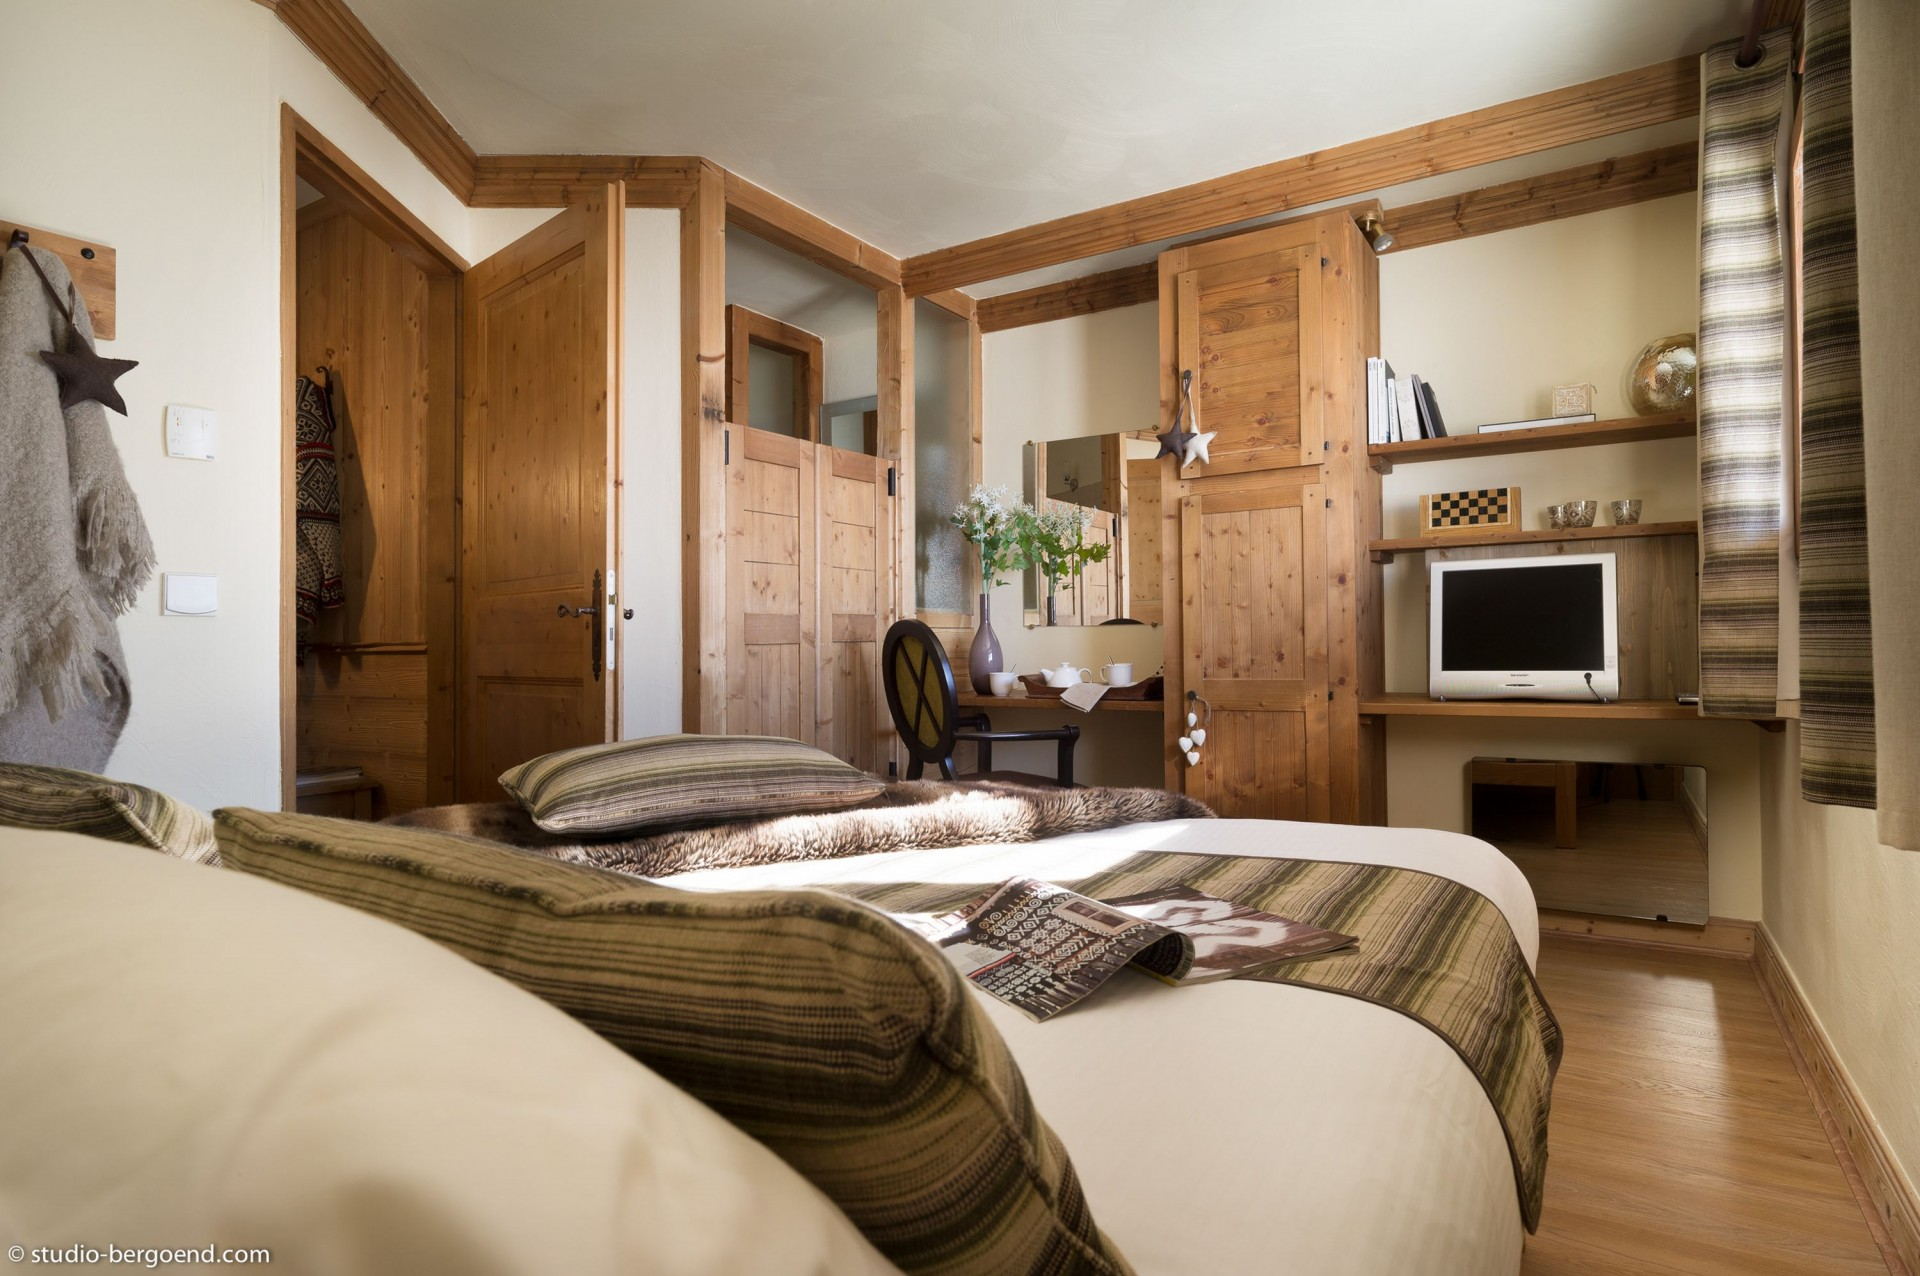 val-thorens-location-appartement-luxe-volcinite Chambre